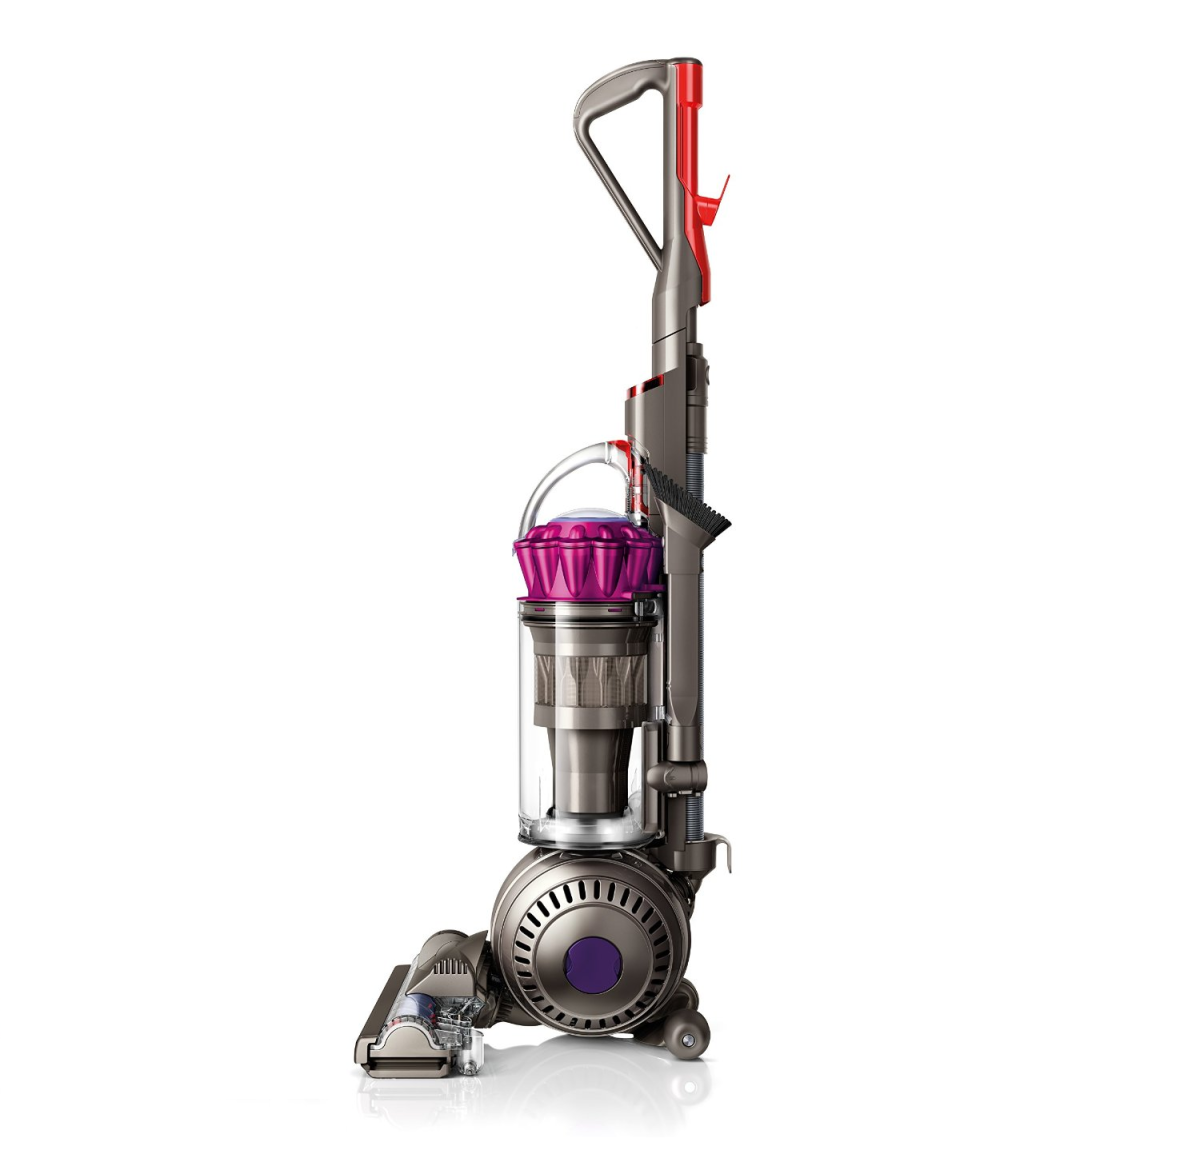 If you're looking for a complete solution for your home vacuuming needs Dyson provides an inexpensive, but quality product.